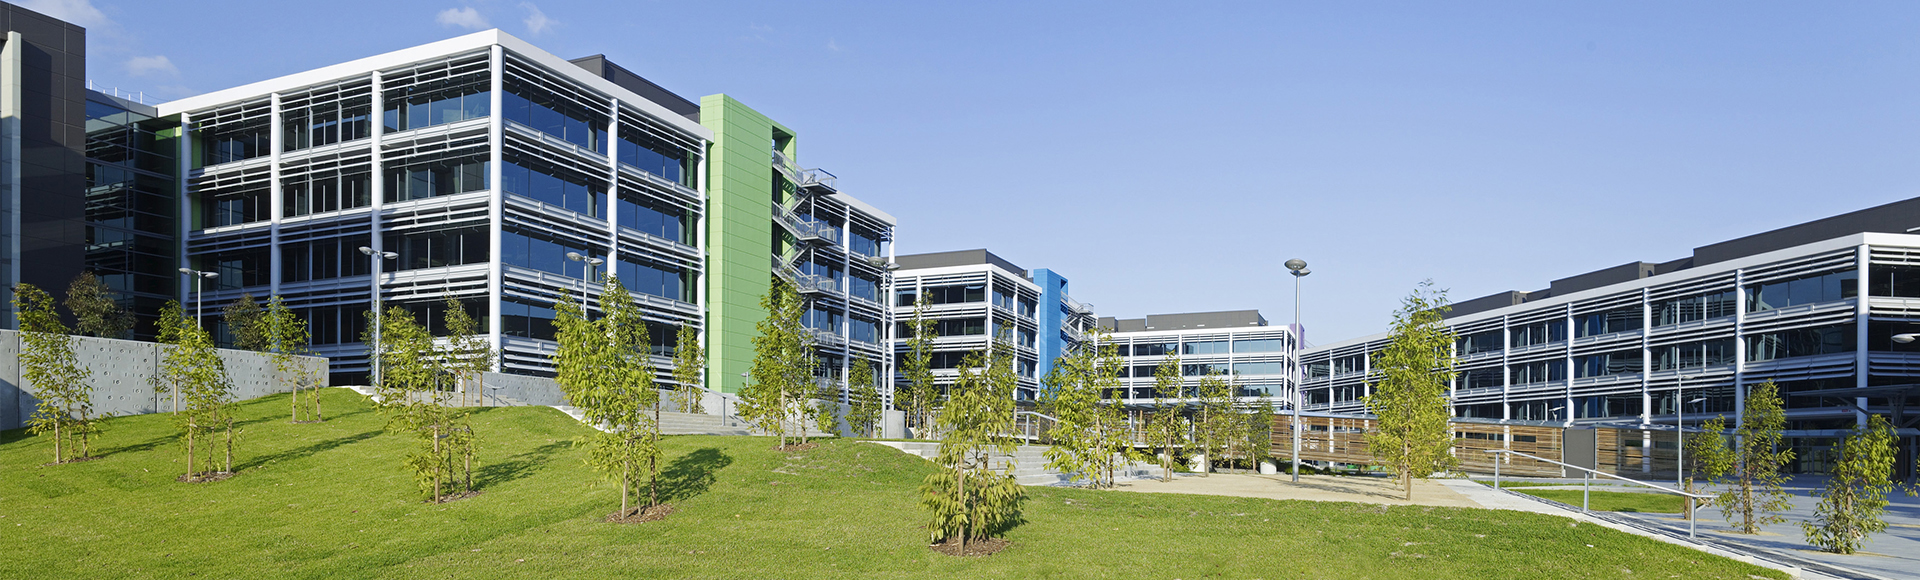 Optus Centre Macquarie Park Ground Shot Exterior 1920x580